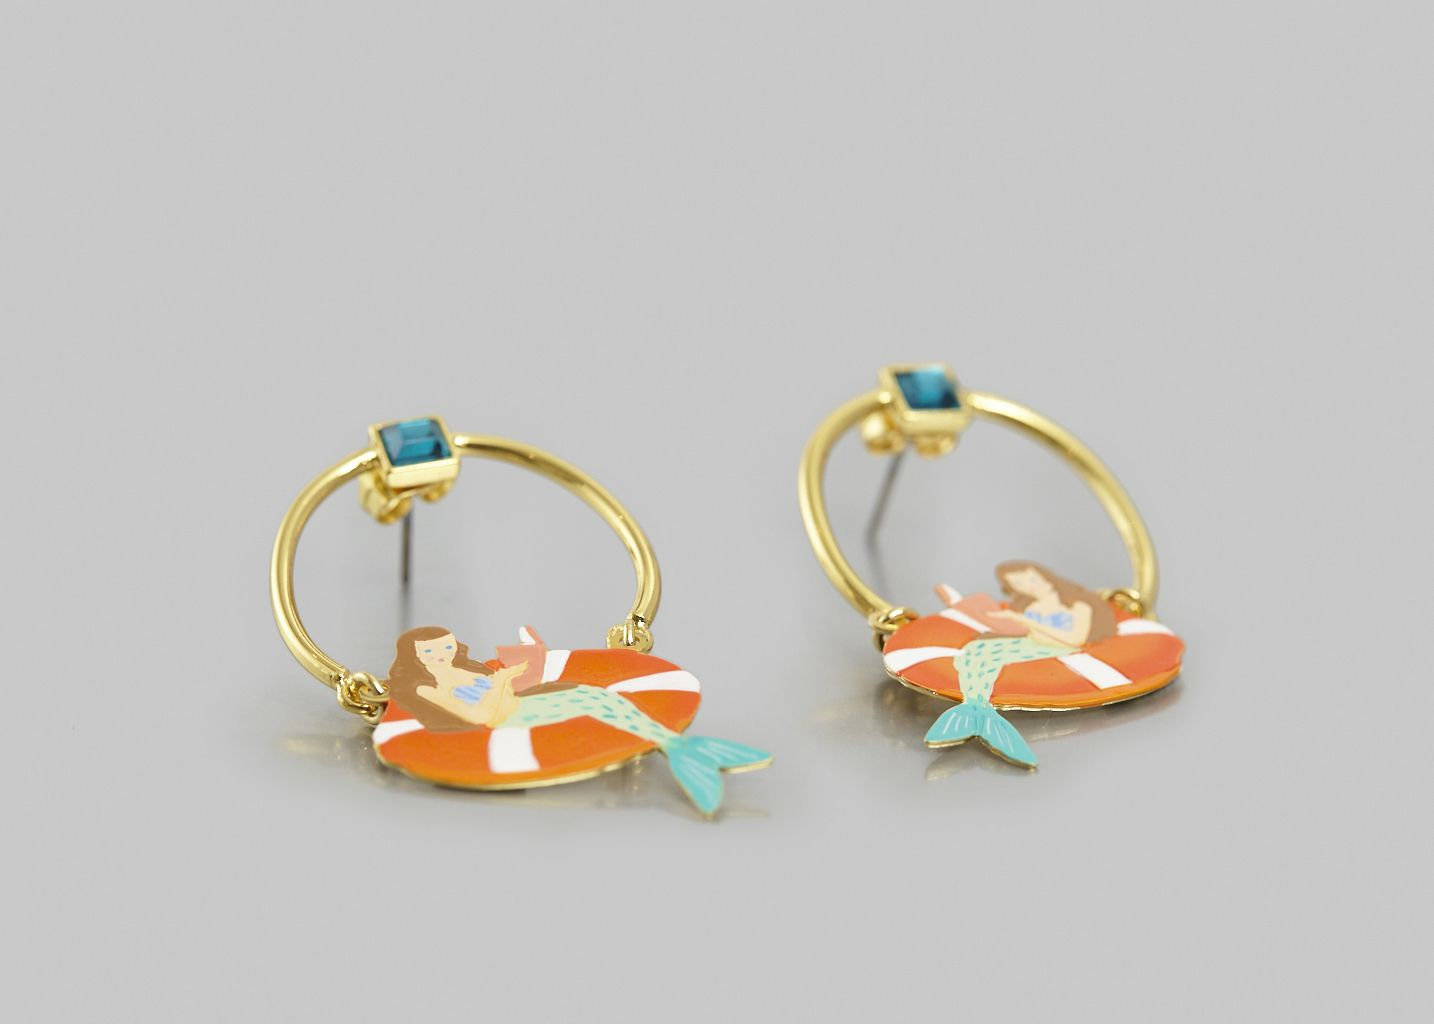 Mermaid Earrings - N2